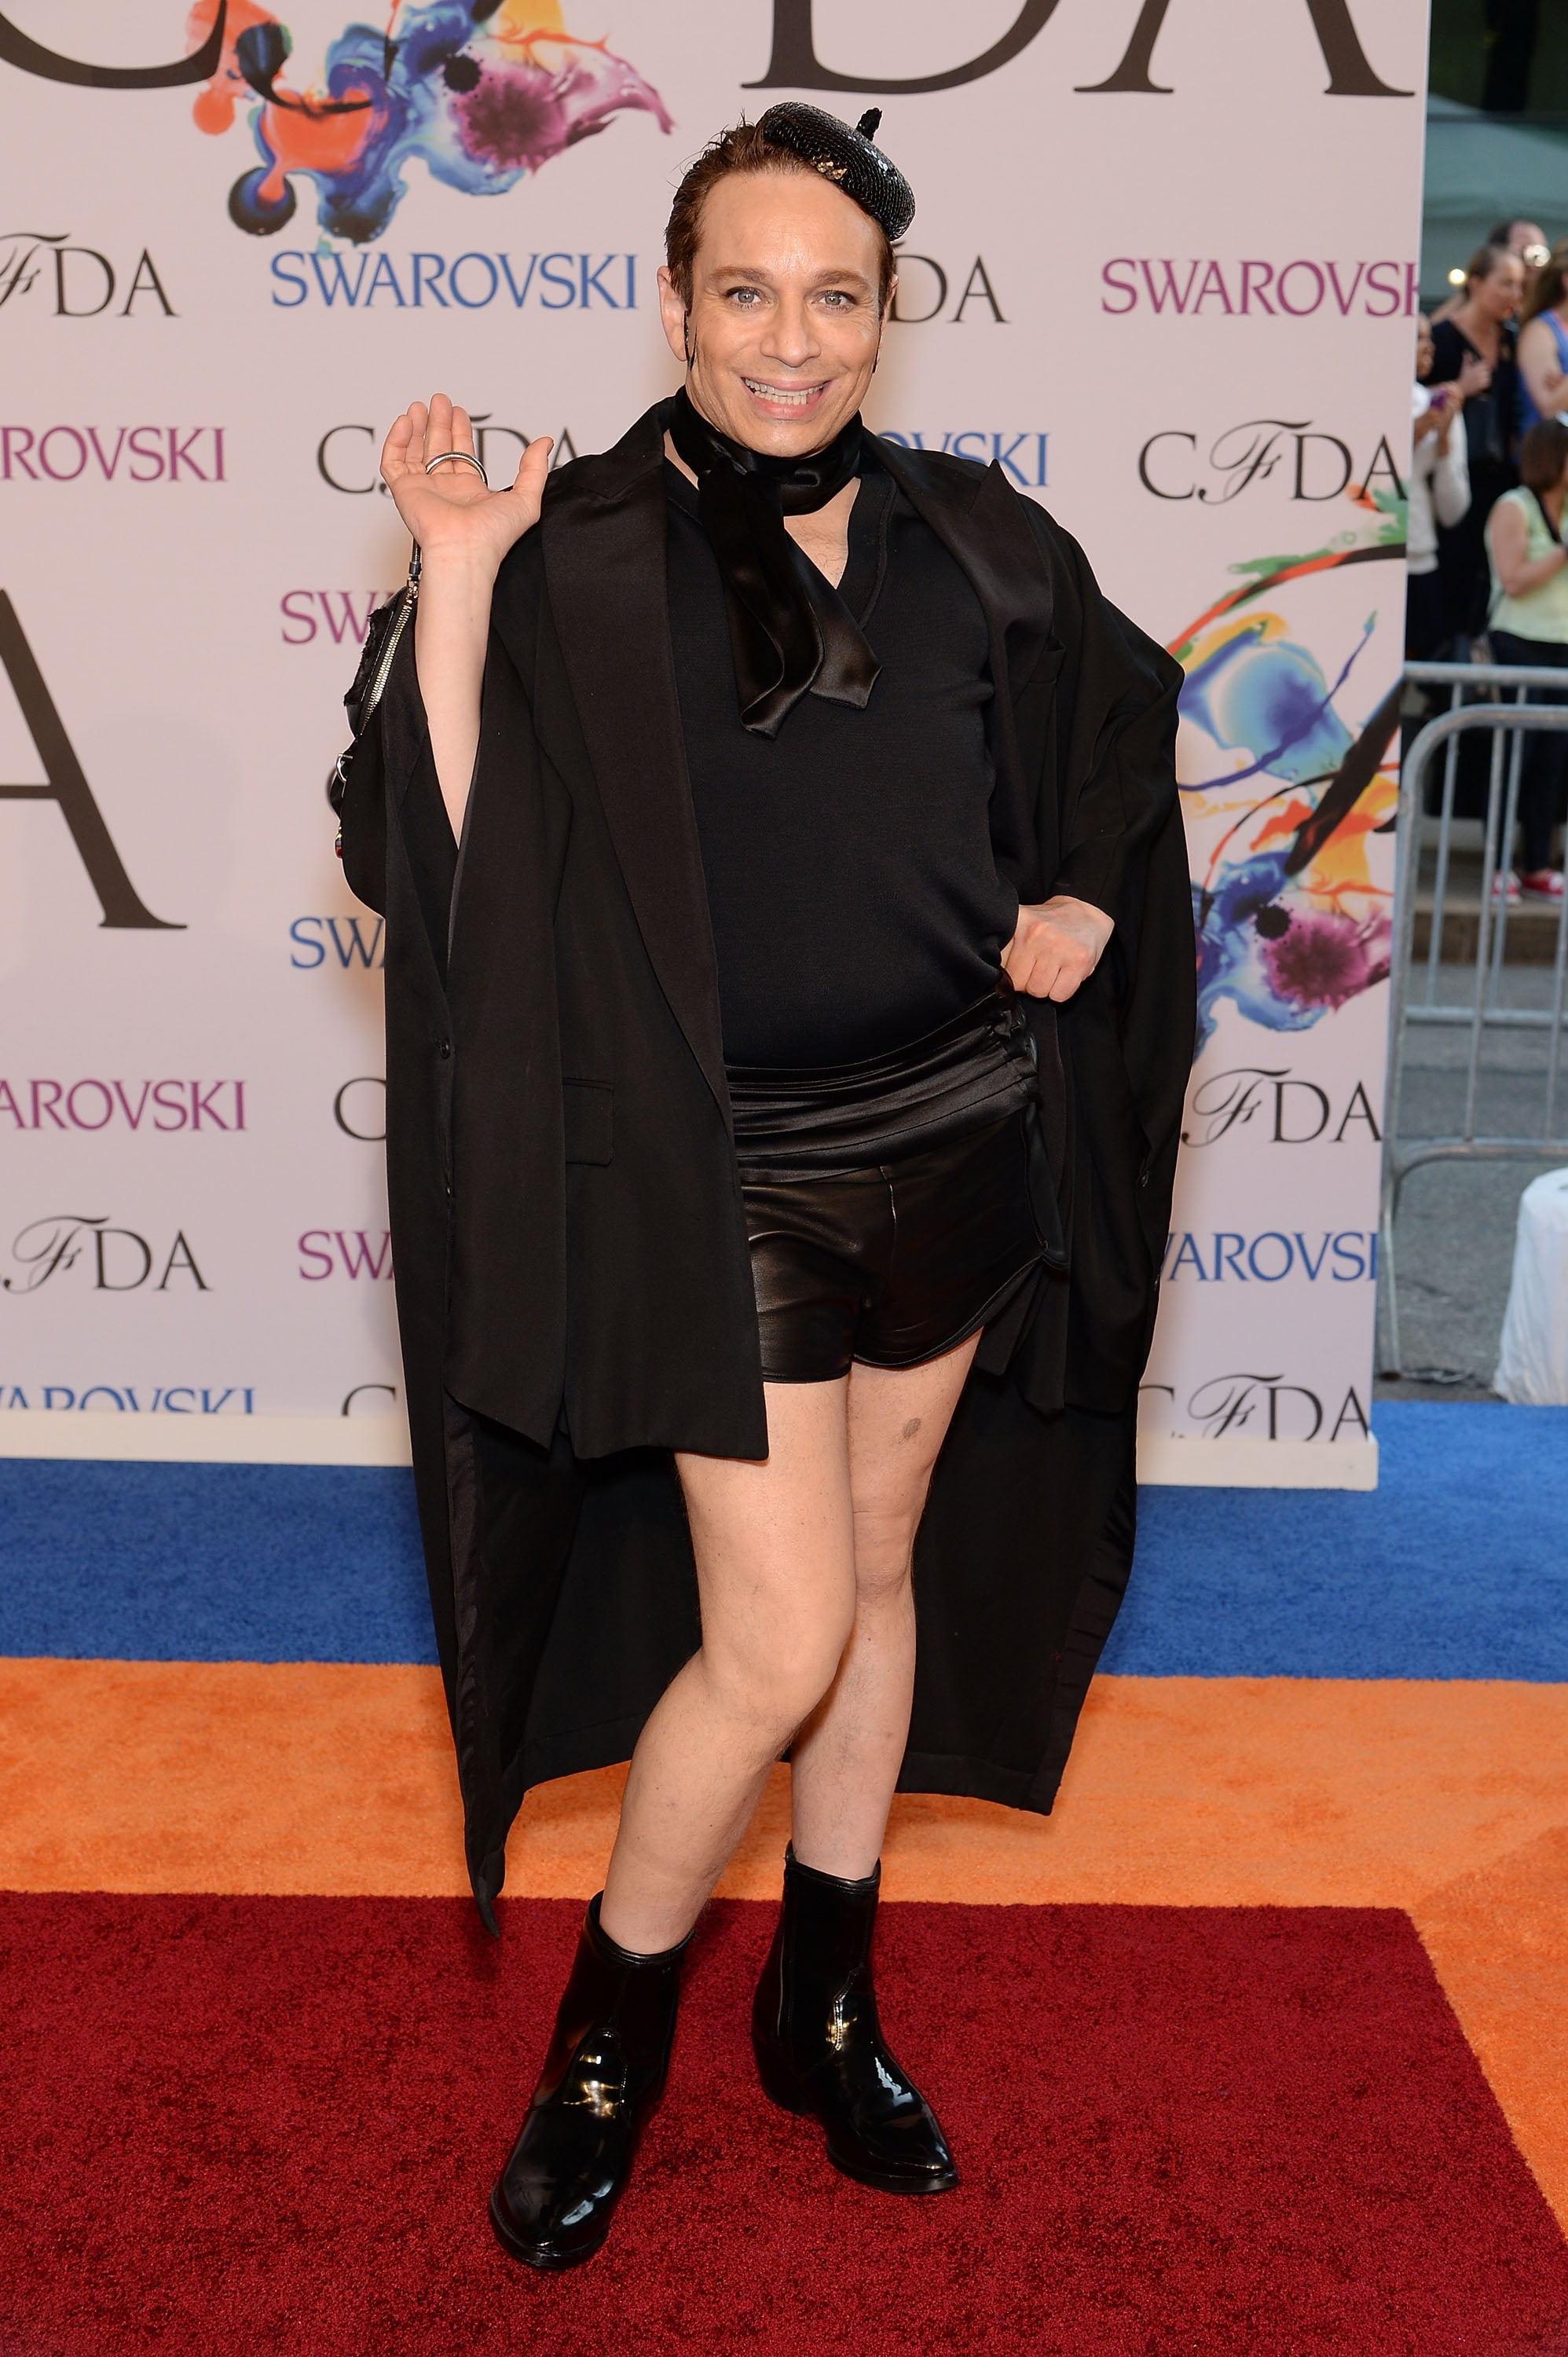 Mango at the 2014 CFDA Awards